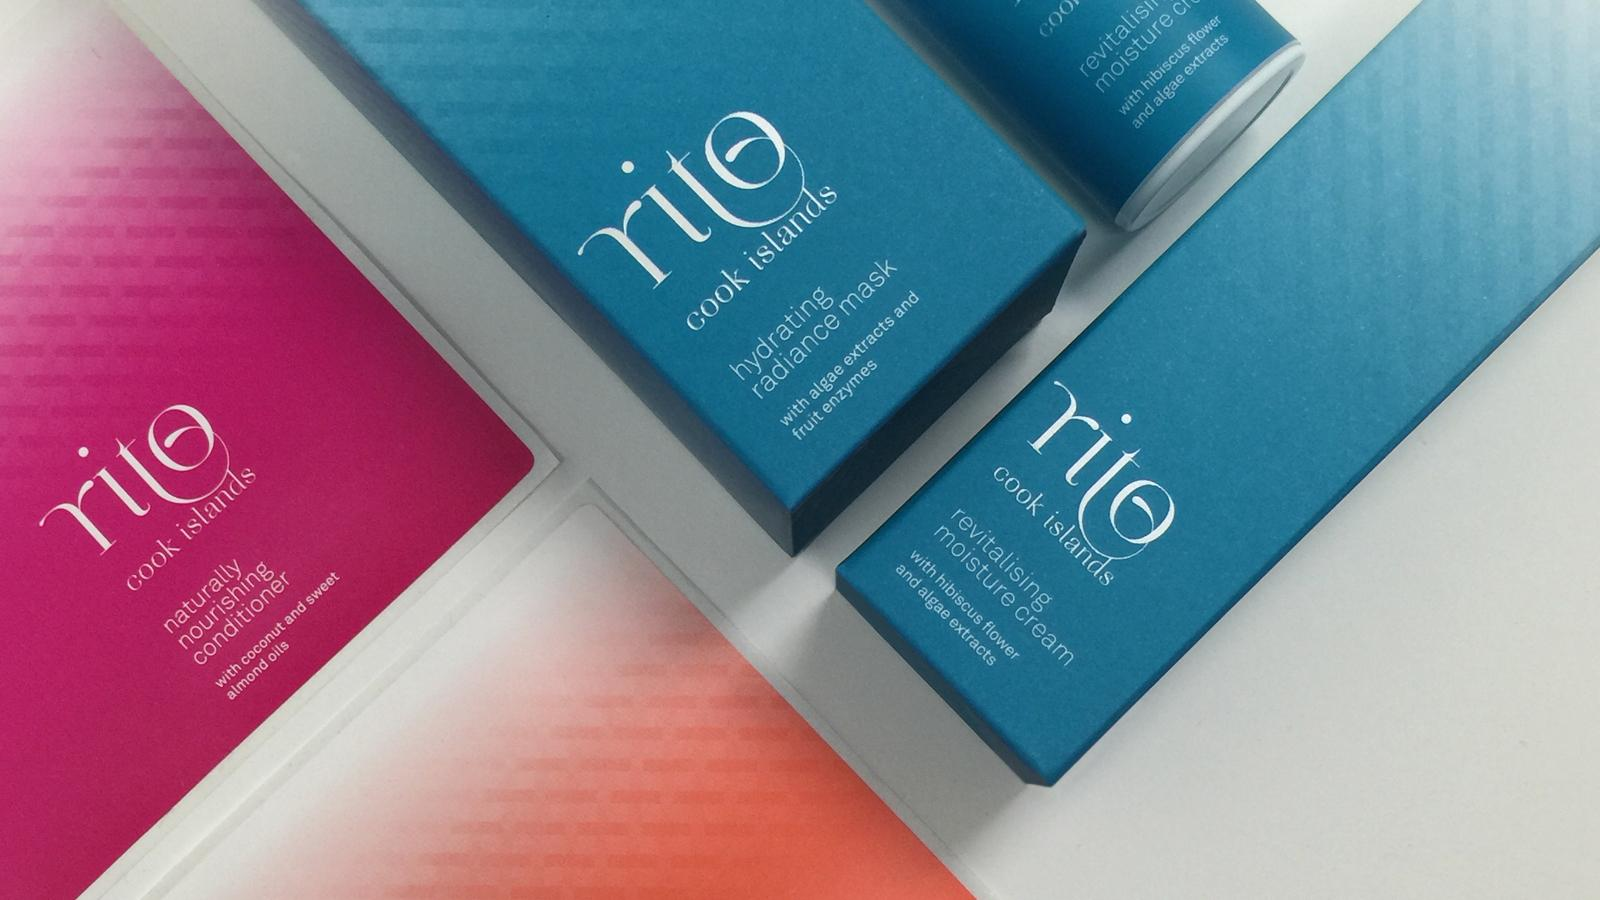 Vibrant Pacifica colours and a modern weaving pattern differentiate Rito Cook Islands skincare packaging